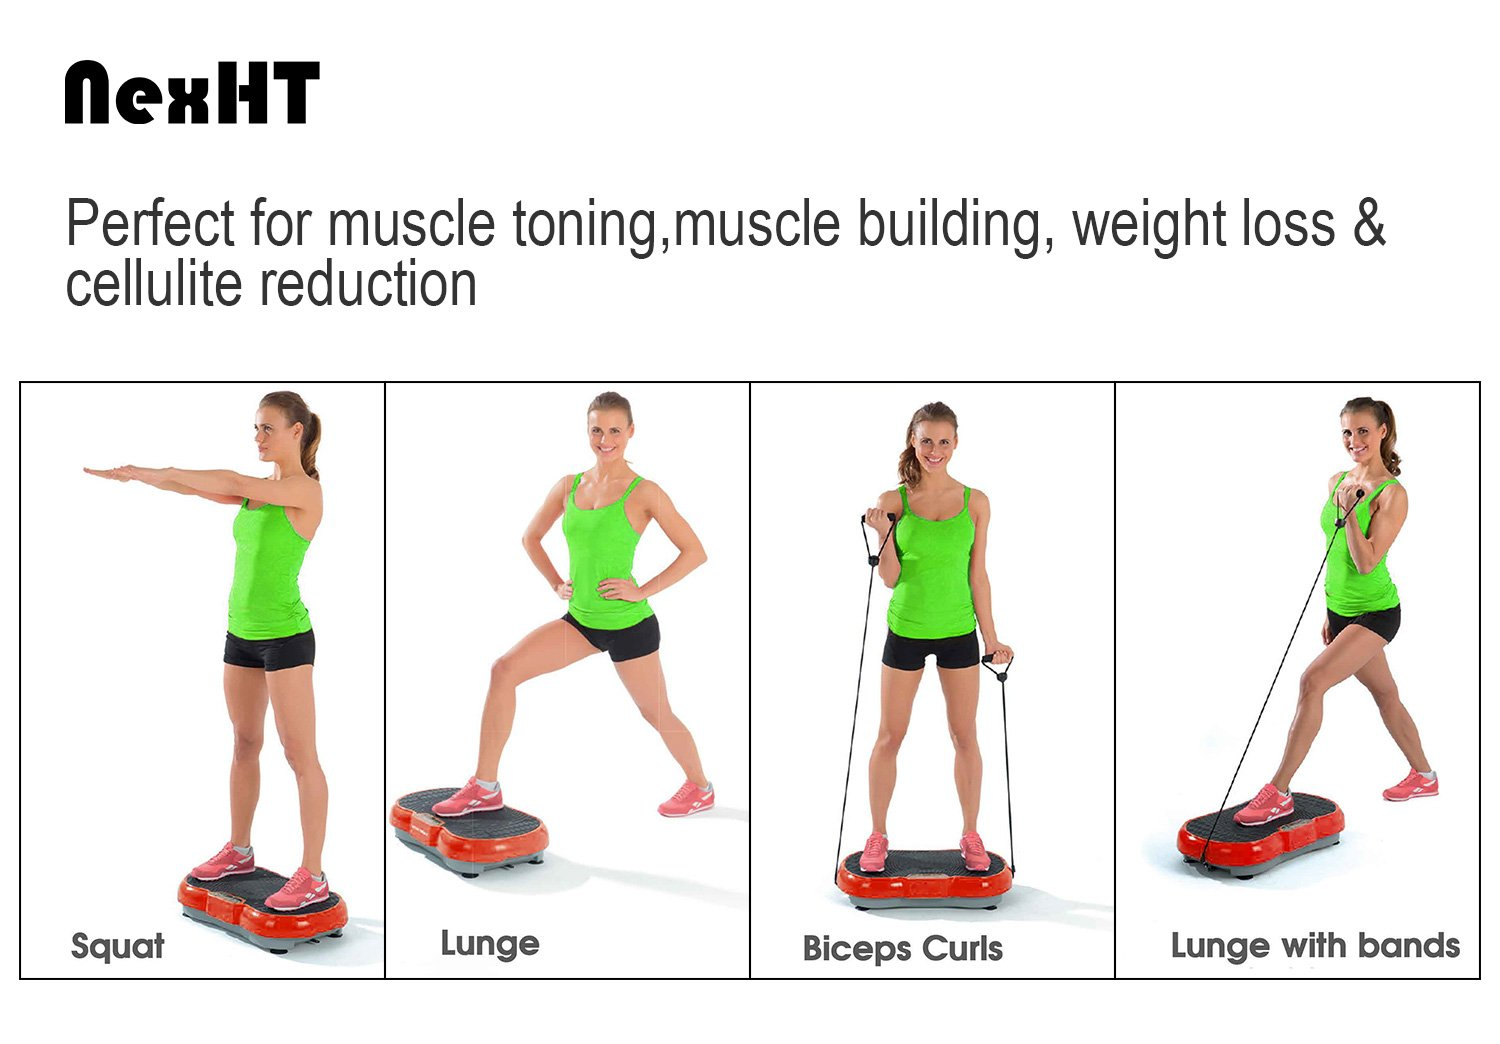 NexHT Mini Fitness Vibration Platform Whole Body Shape Exercise Machine with Built-in USB Speaker(89012A), Fit Vibration Plate Massage Workout Trainer with Two Bands &Remote,Max User Weight 330lbs.Red by NexHT (Image #8)